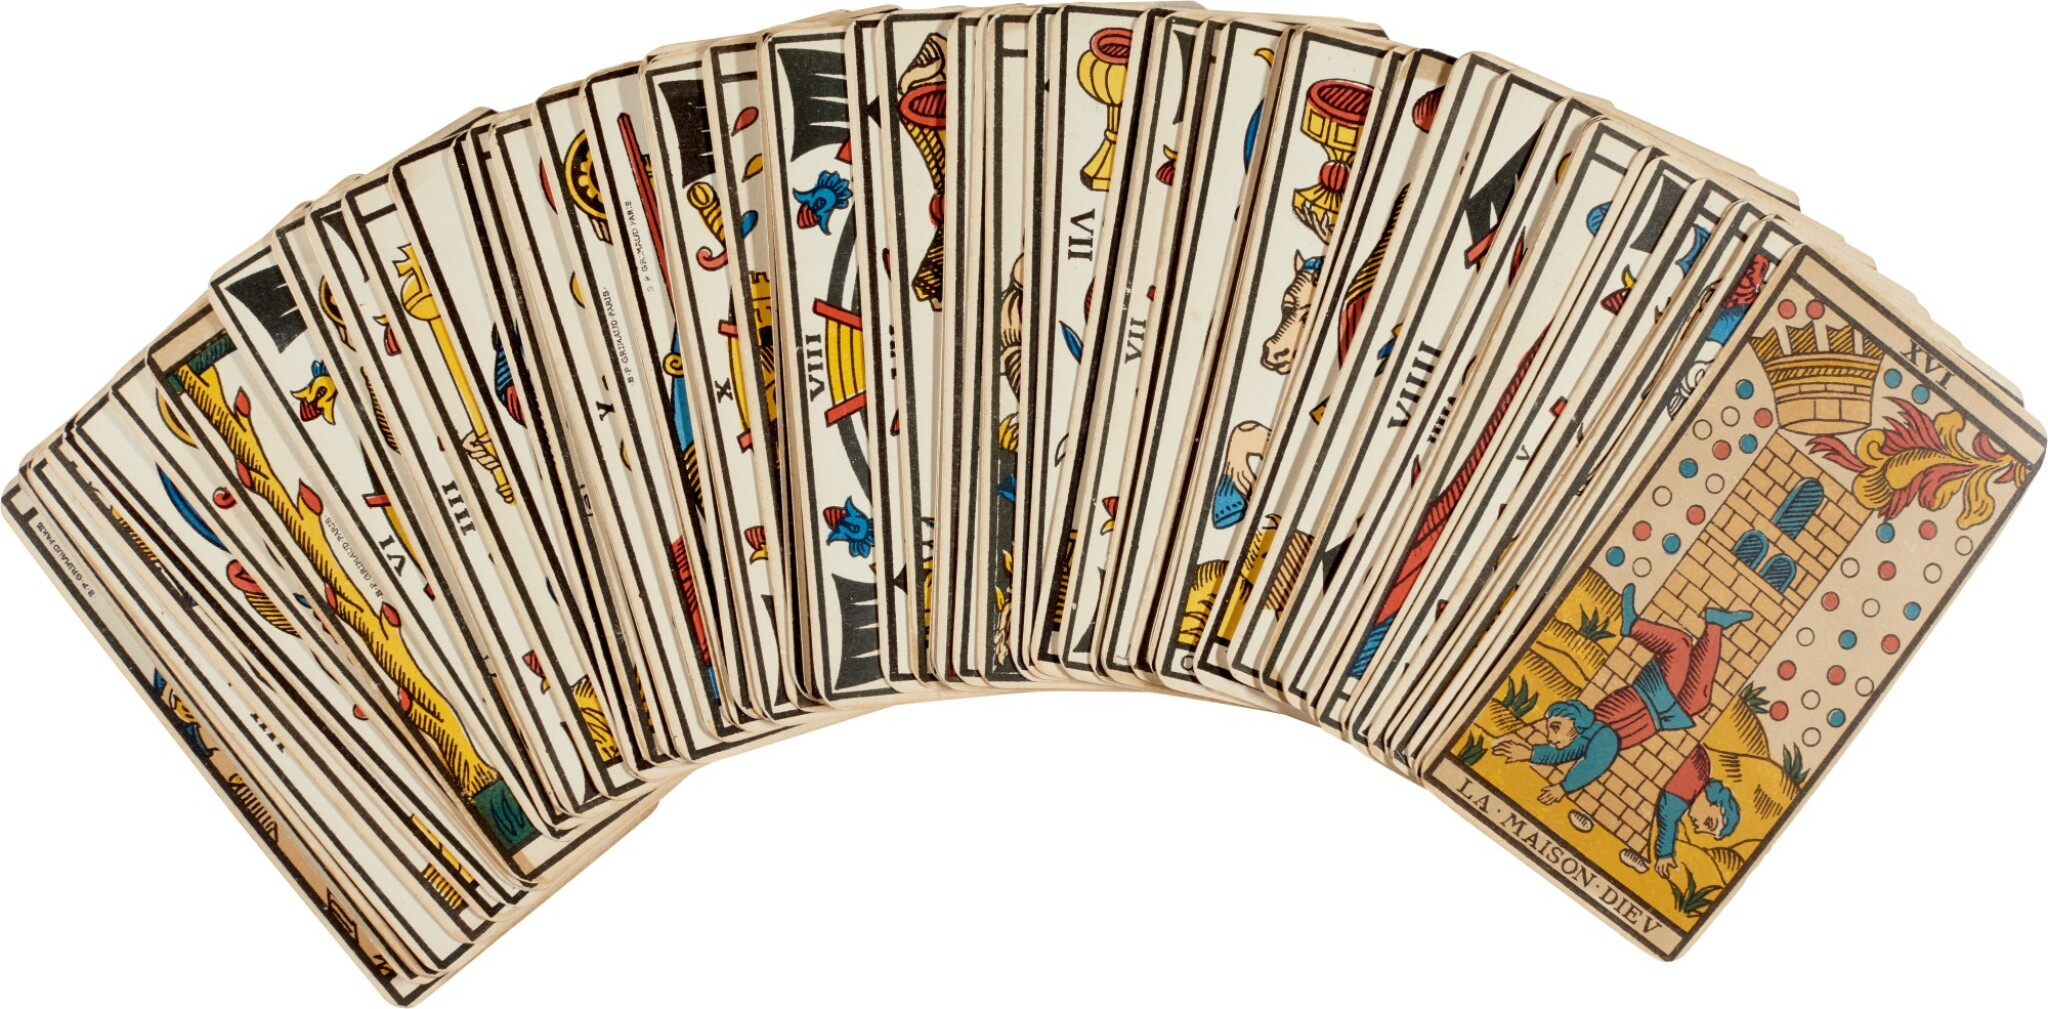 View full screen - View 1 of Lot 22. Tarot de Marseille | Deck of cards owned by Sylvia Plath.